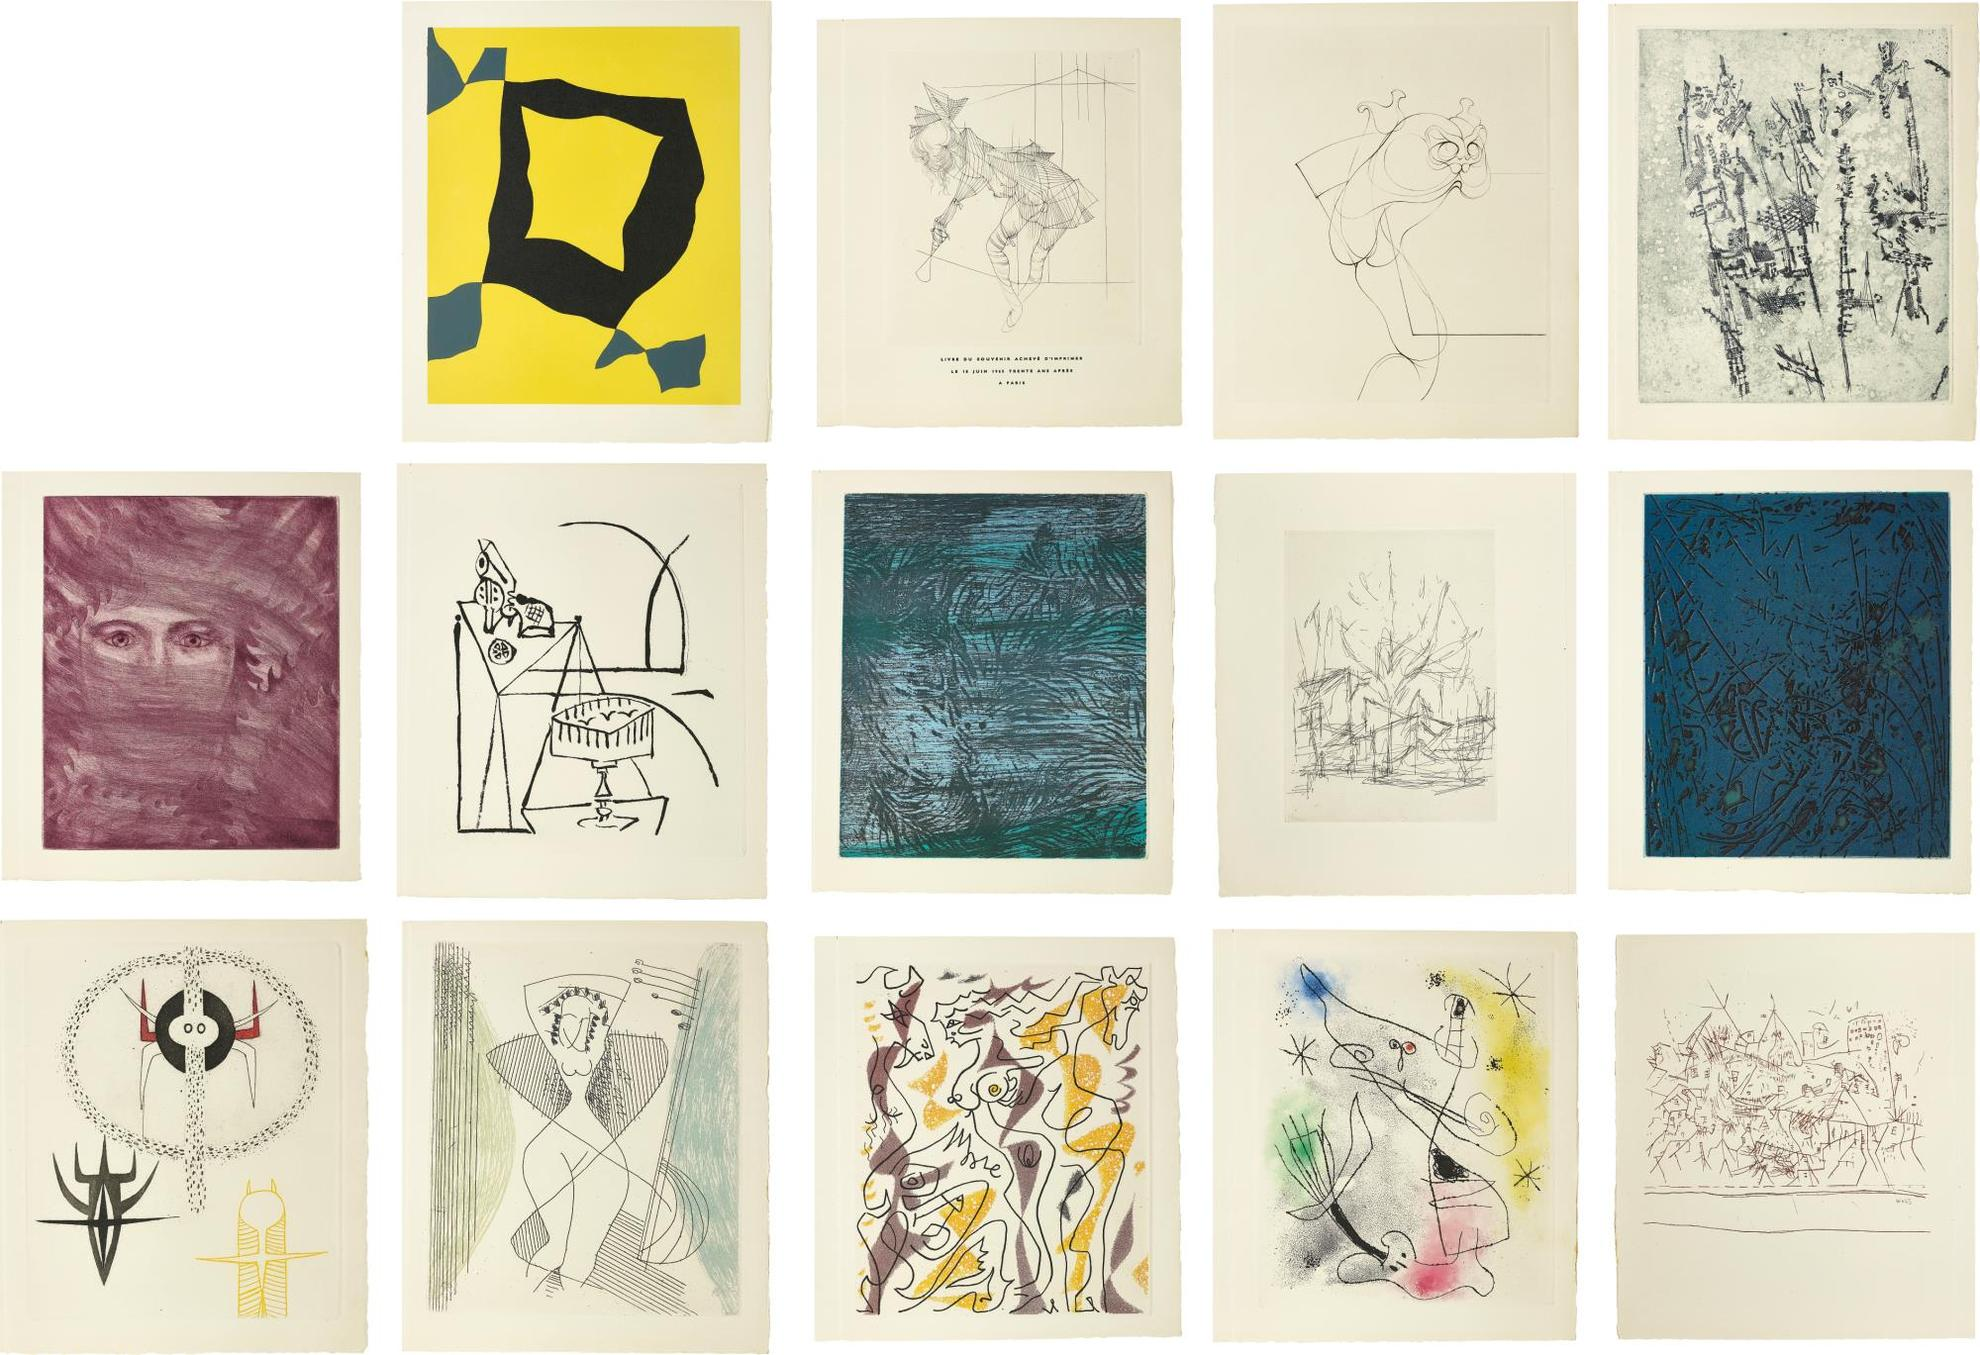 Various Artists Including Joan Miro Alberto Giacometti And Man Ray - Rene Crevel: Feuilles Eparses (Scattered Leaves)-1965